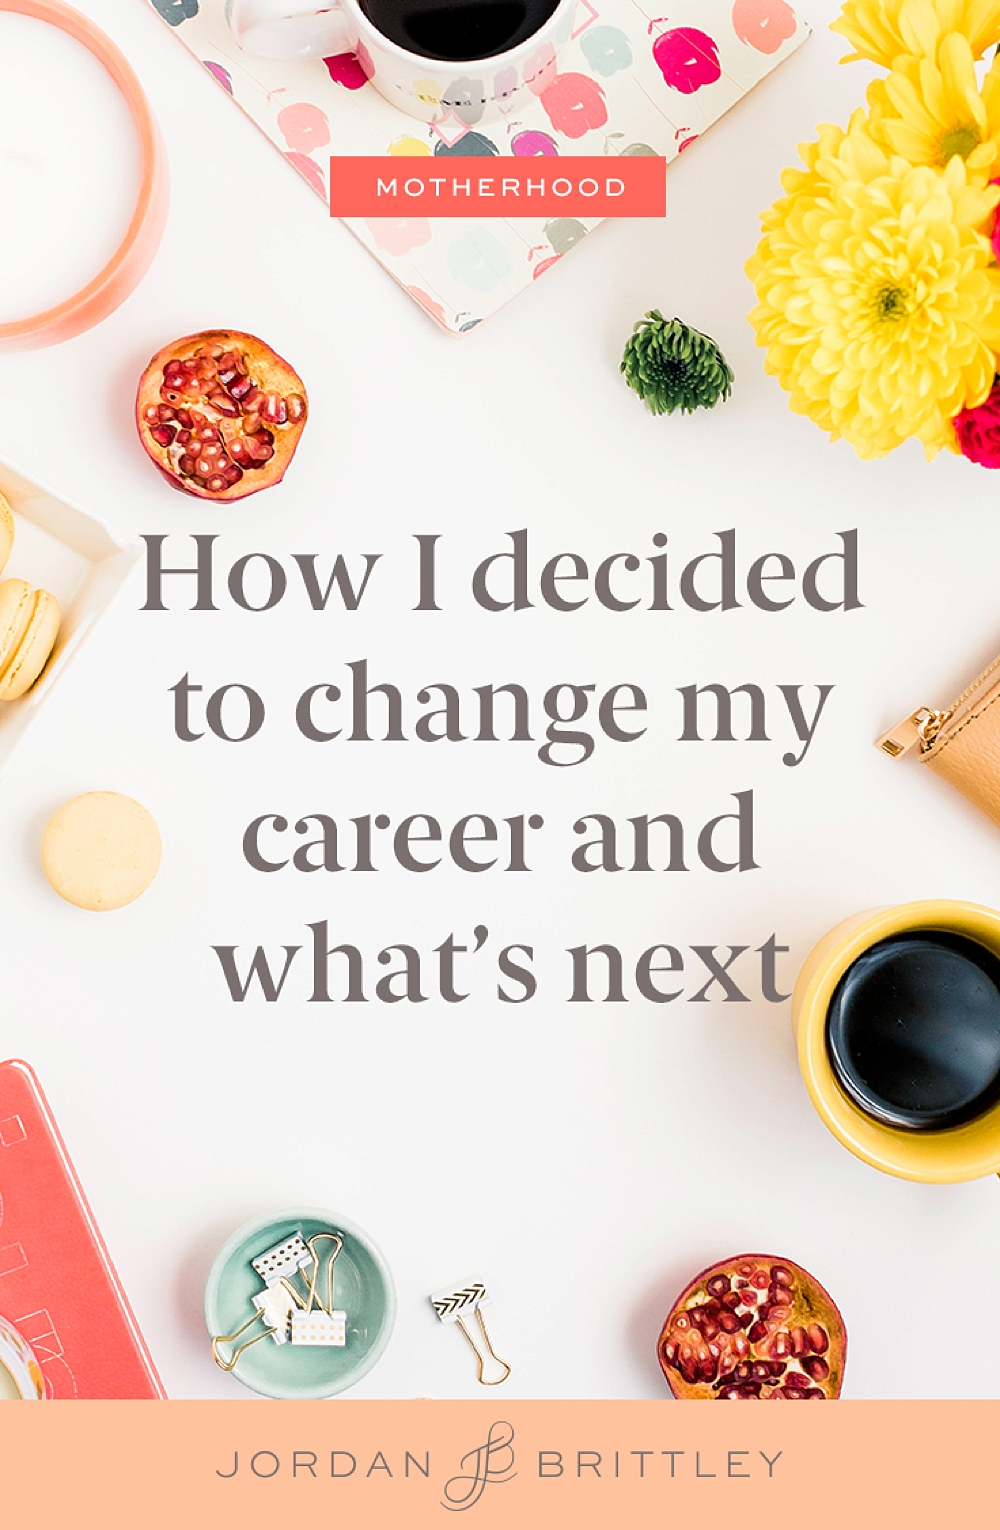 How I decided to change my career - Jordan Brittley